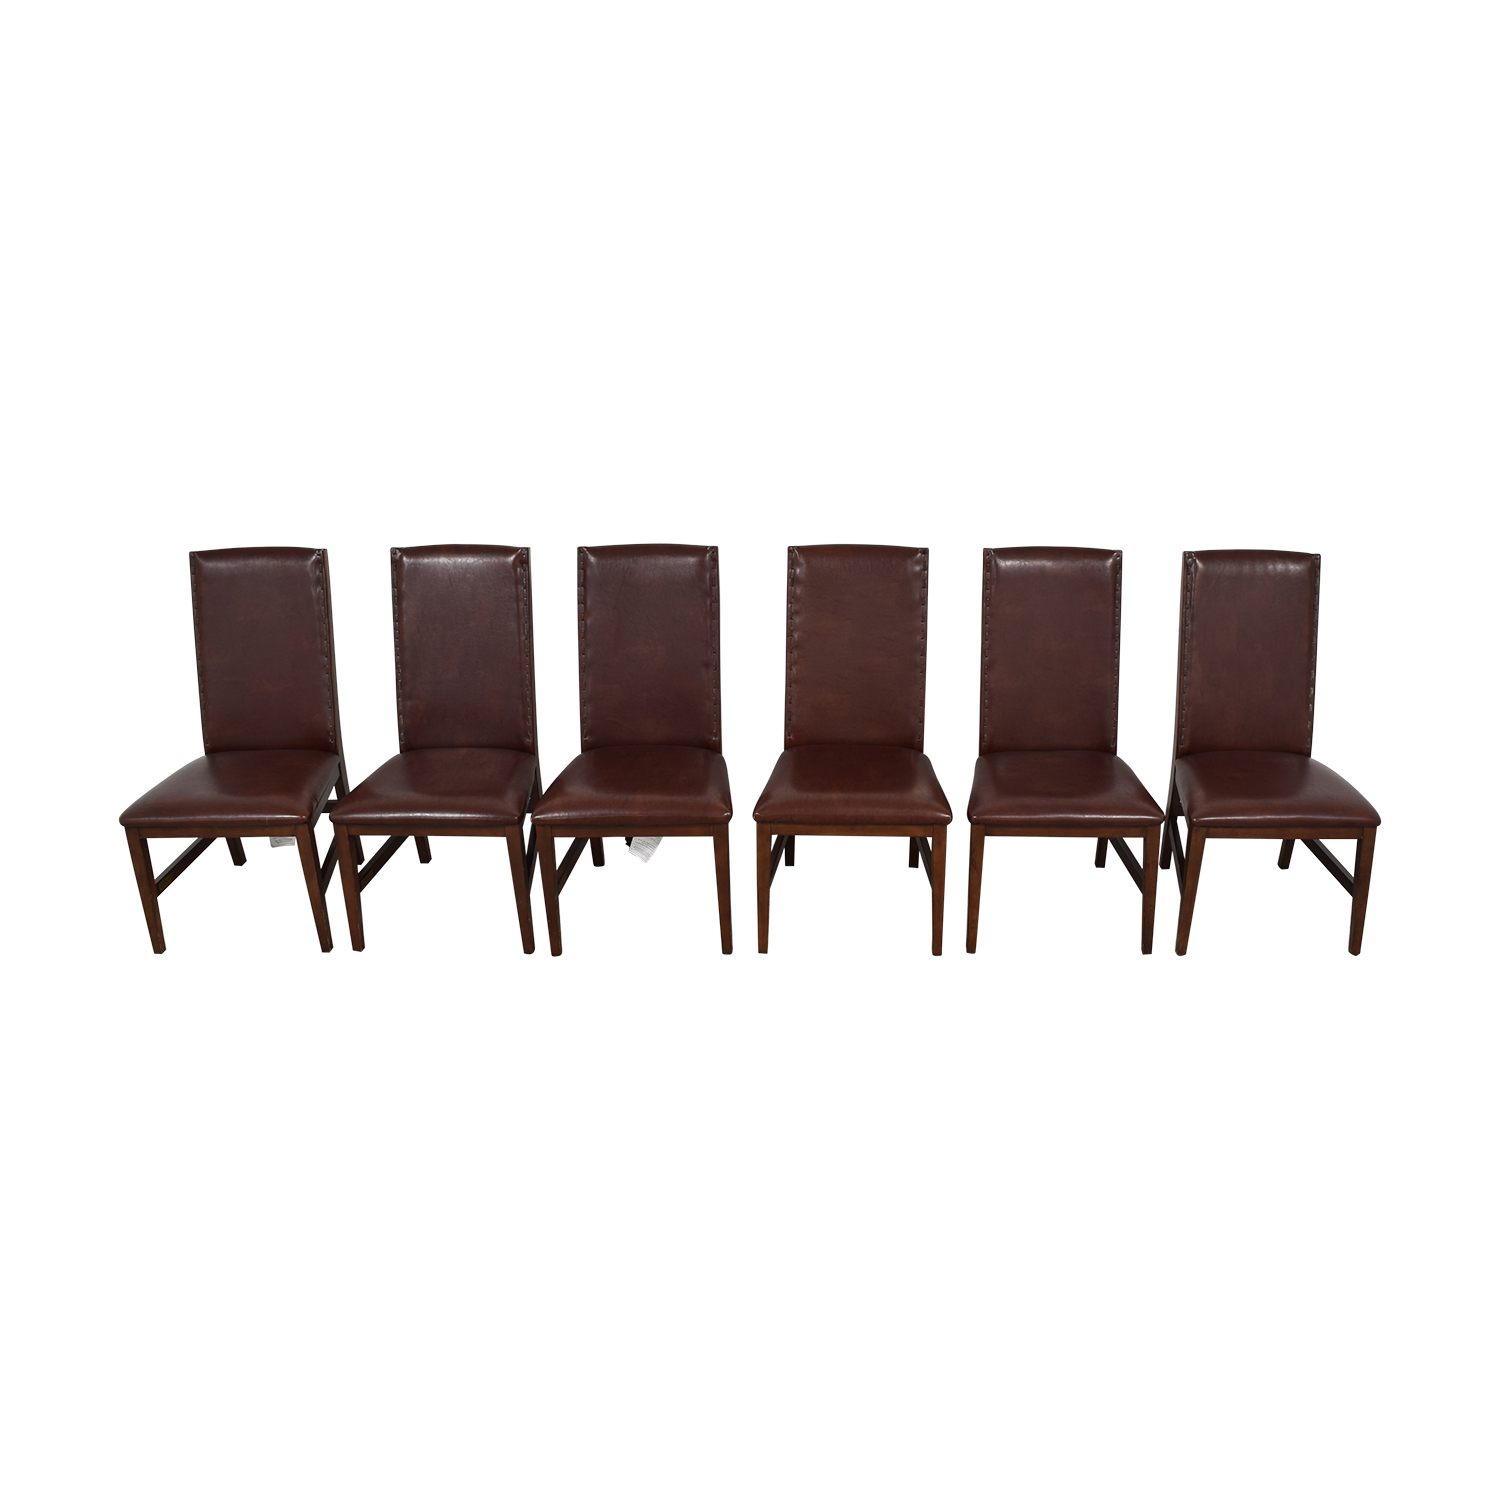 Nichols Stone Brown Dining Chairs